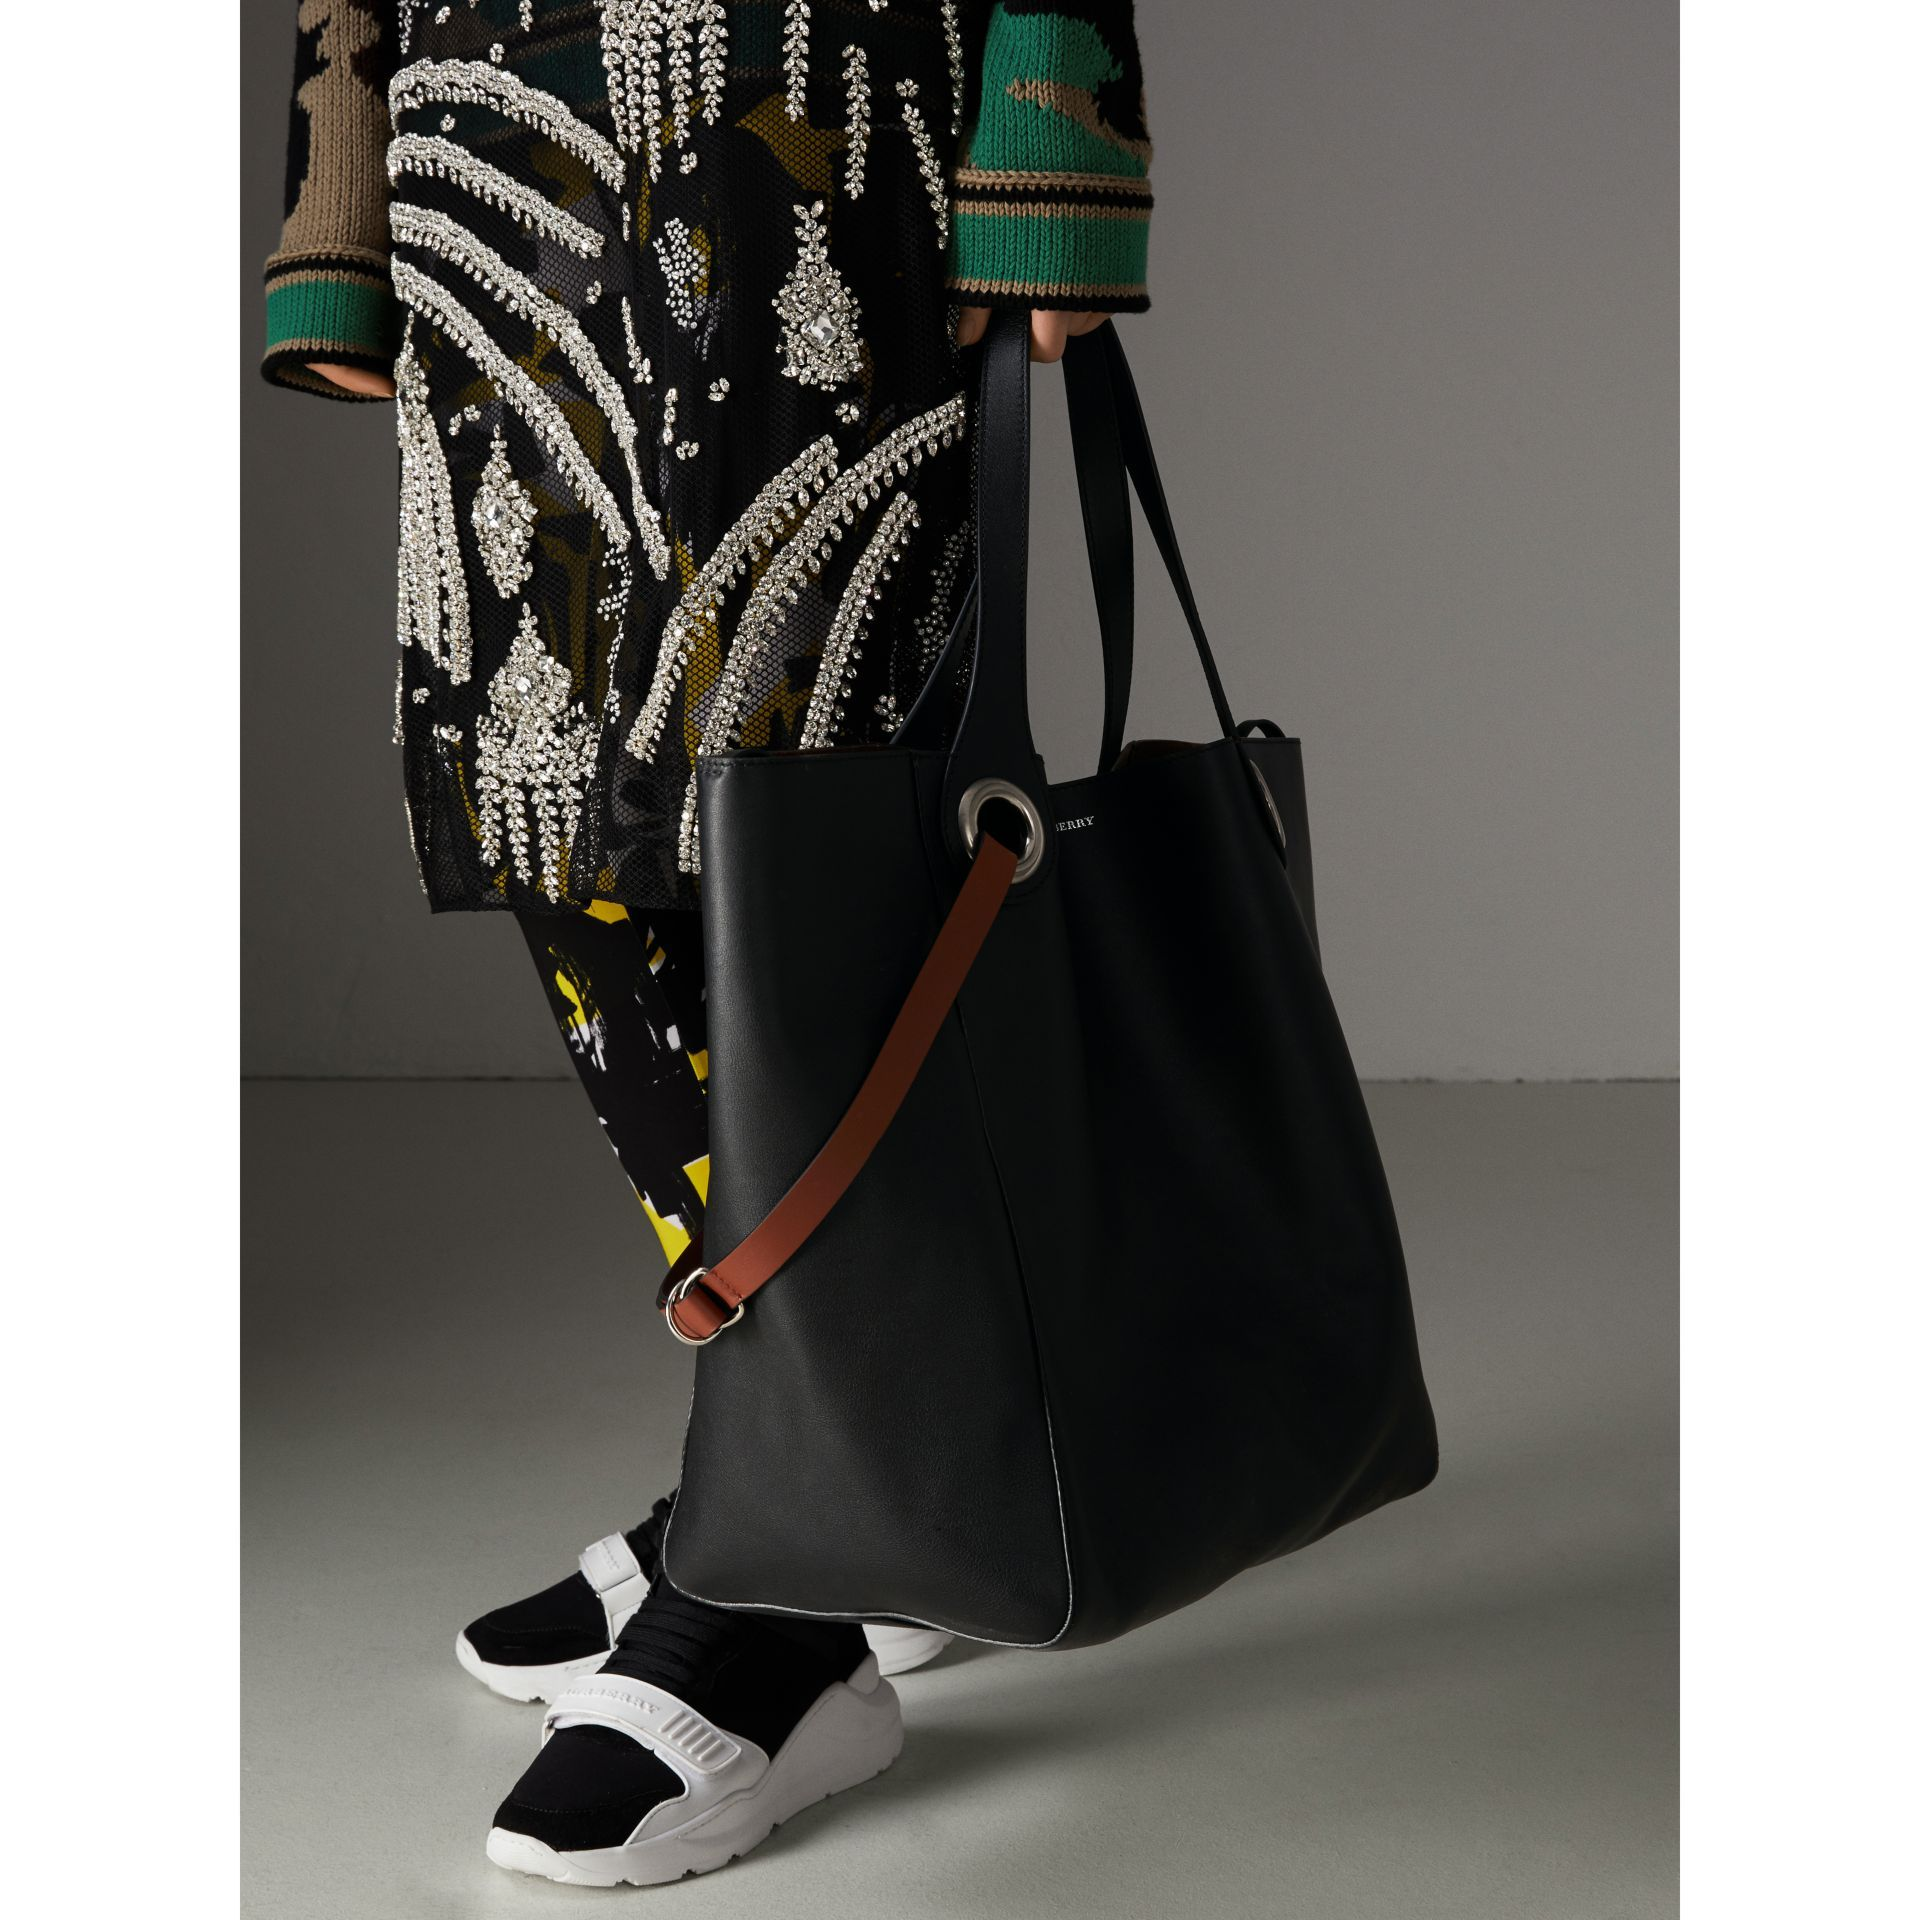 BURBERRY THE LARGE LEATHER GROMMET DETAIL TOTE 9429aab8e3